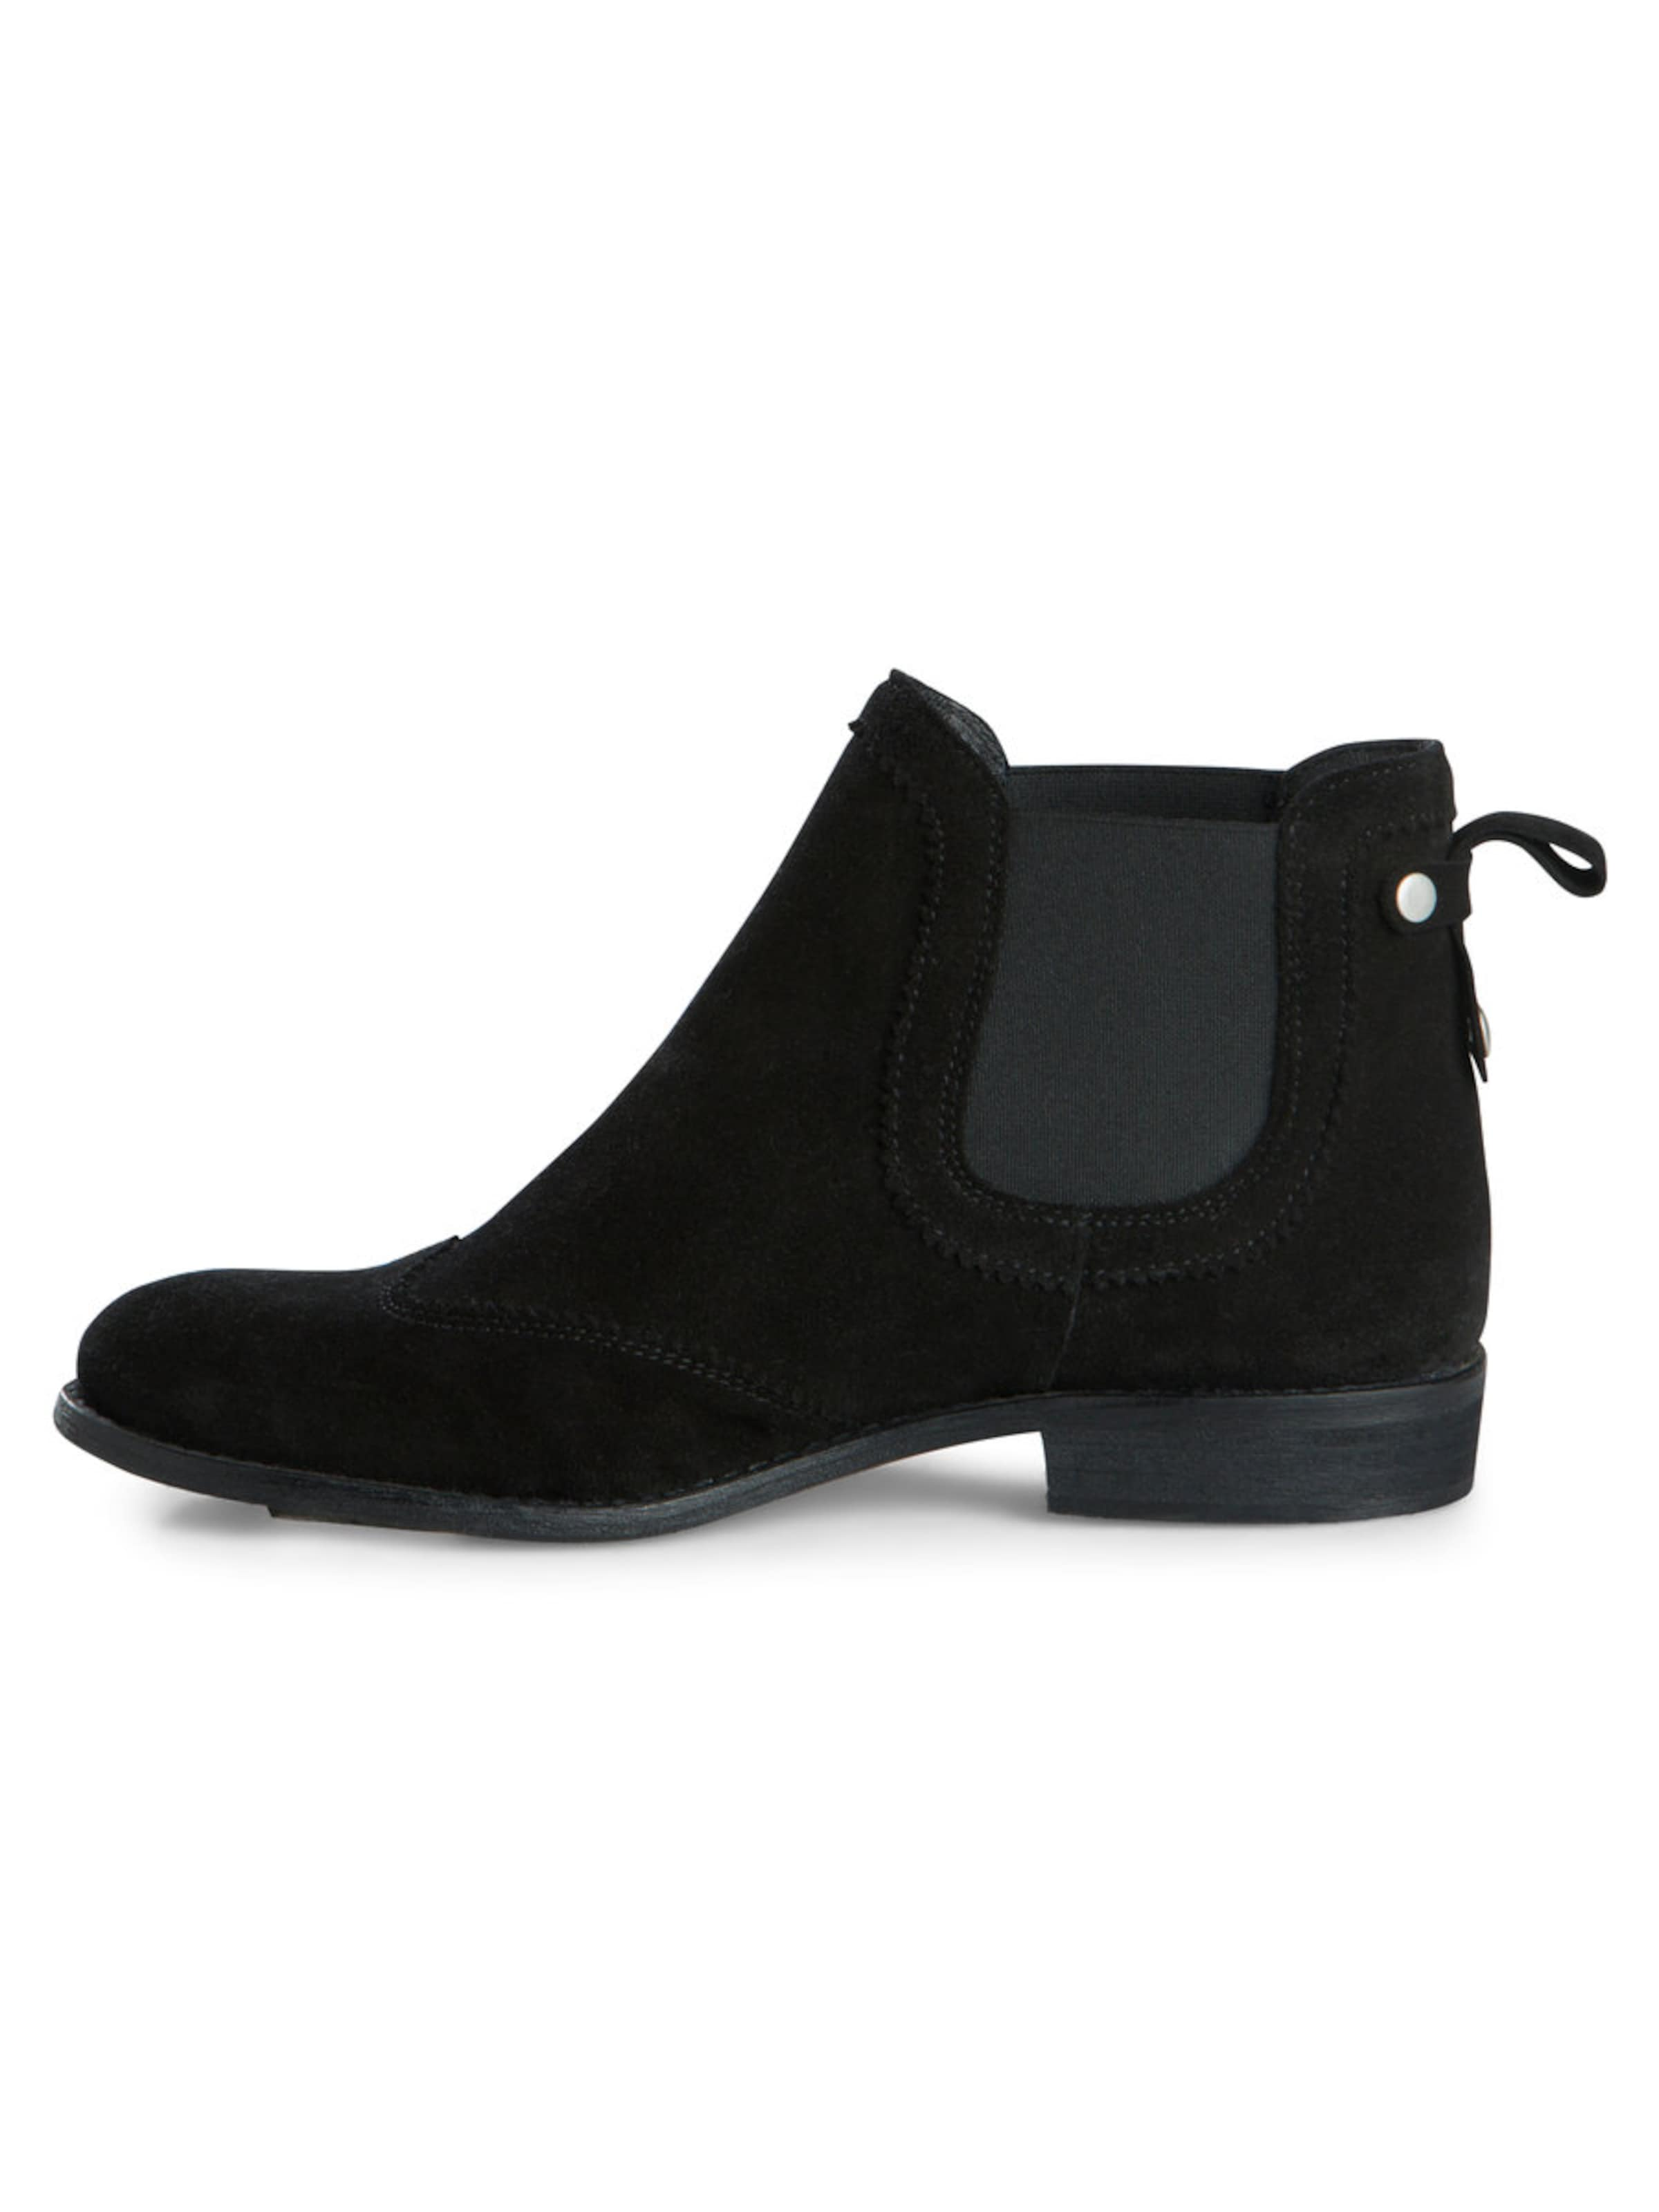 PIECES Veloursleder-Stiefel Outlet Kaufen hu2EQZ